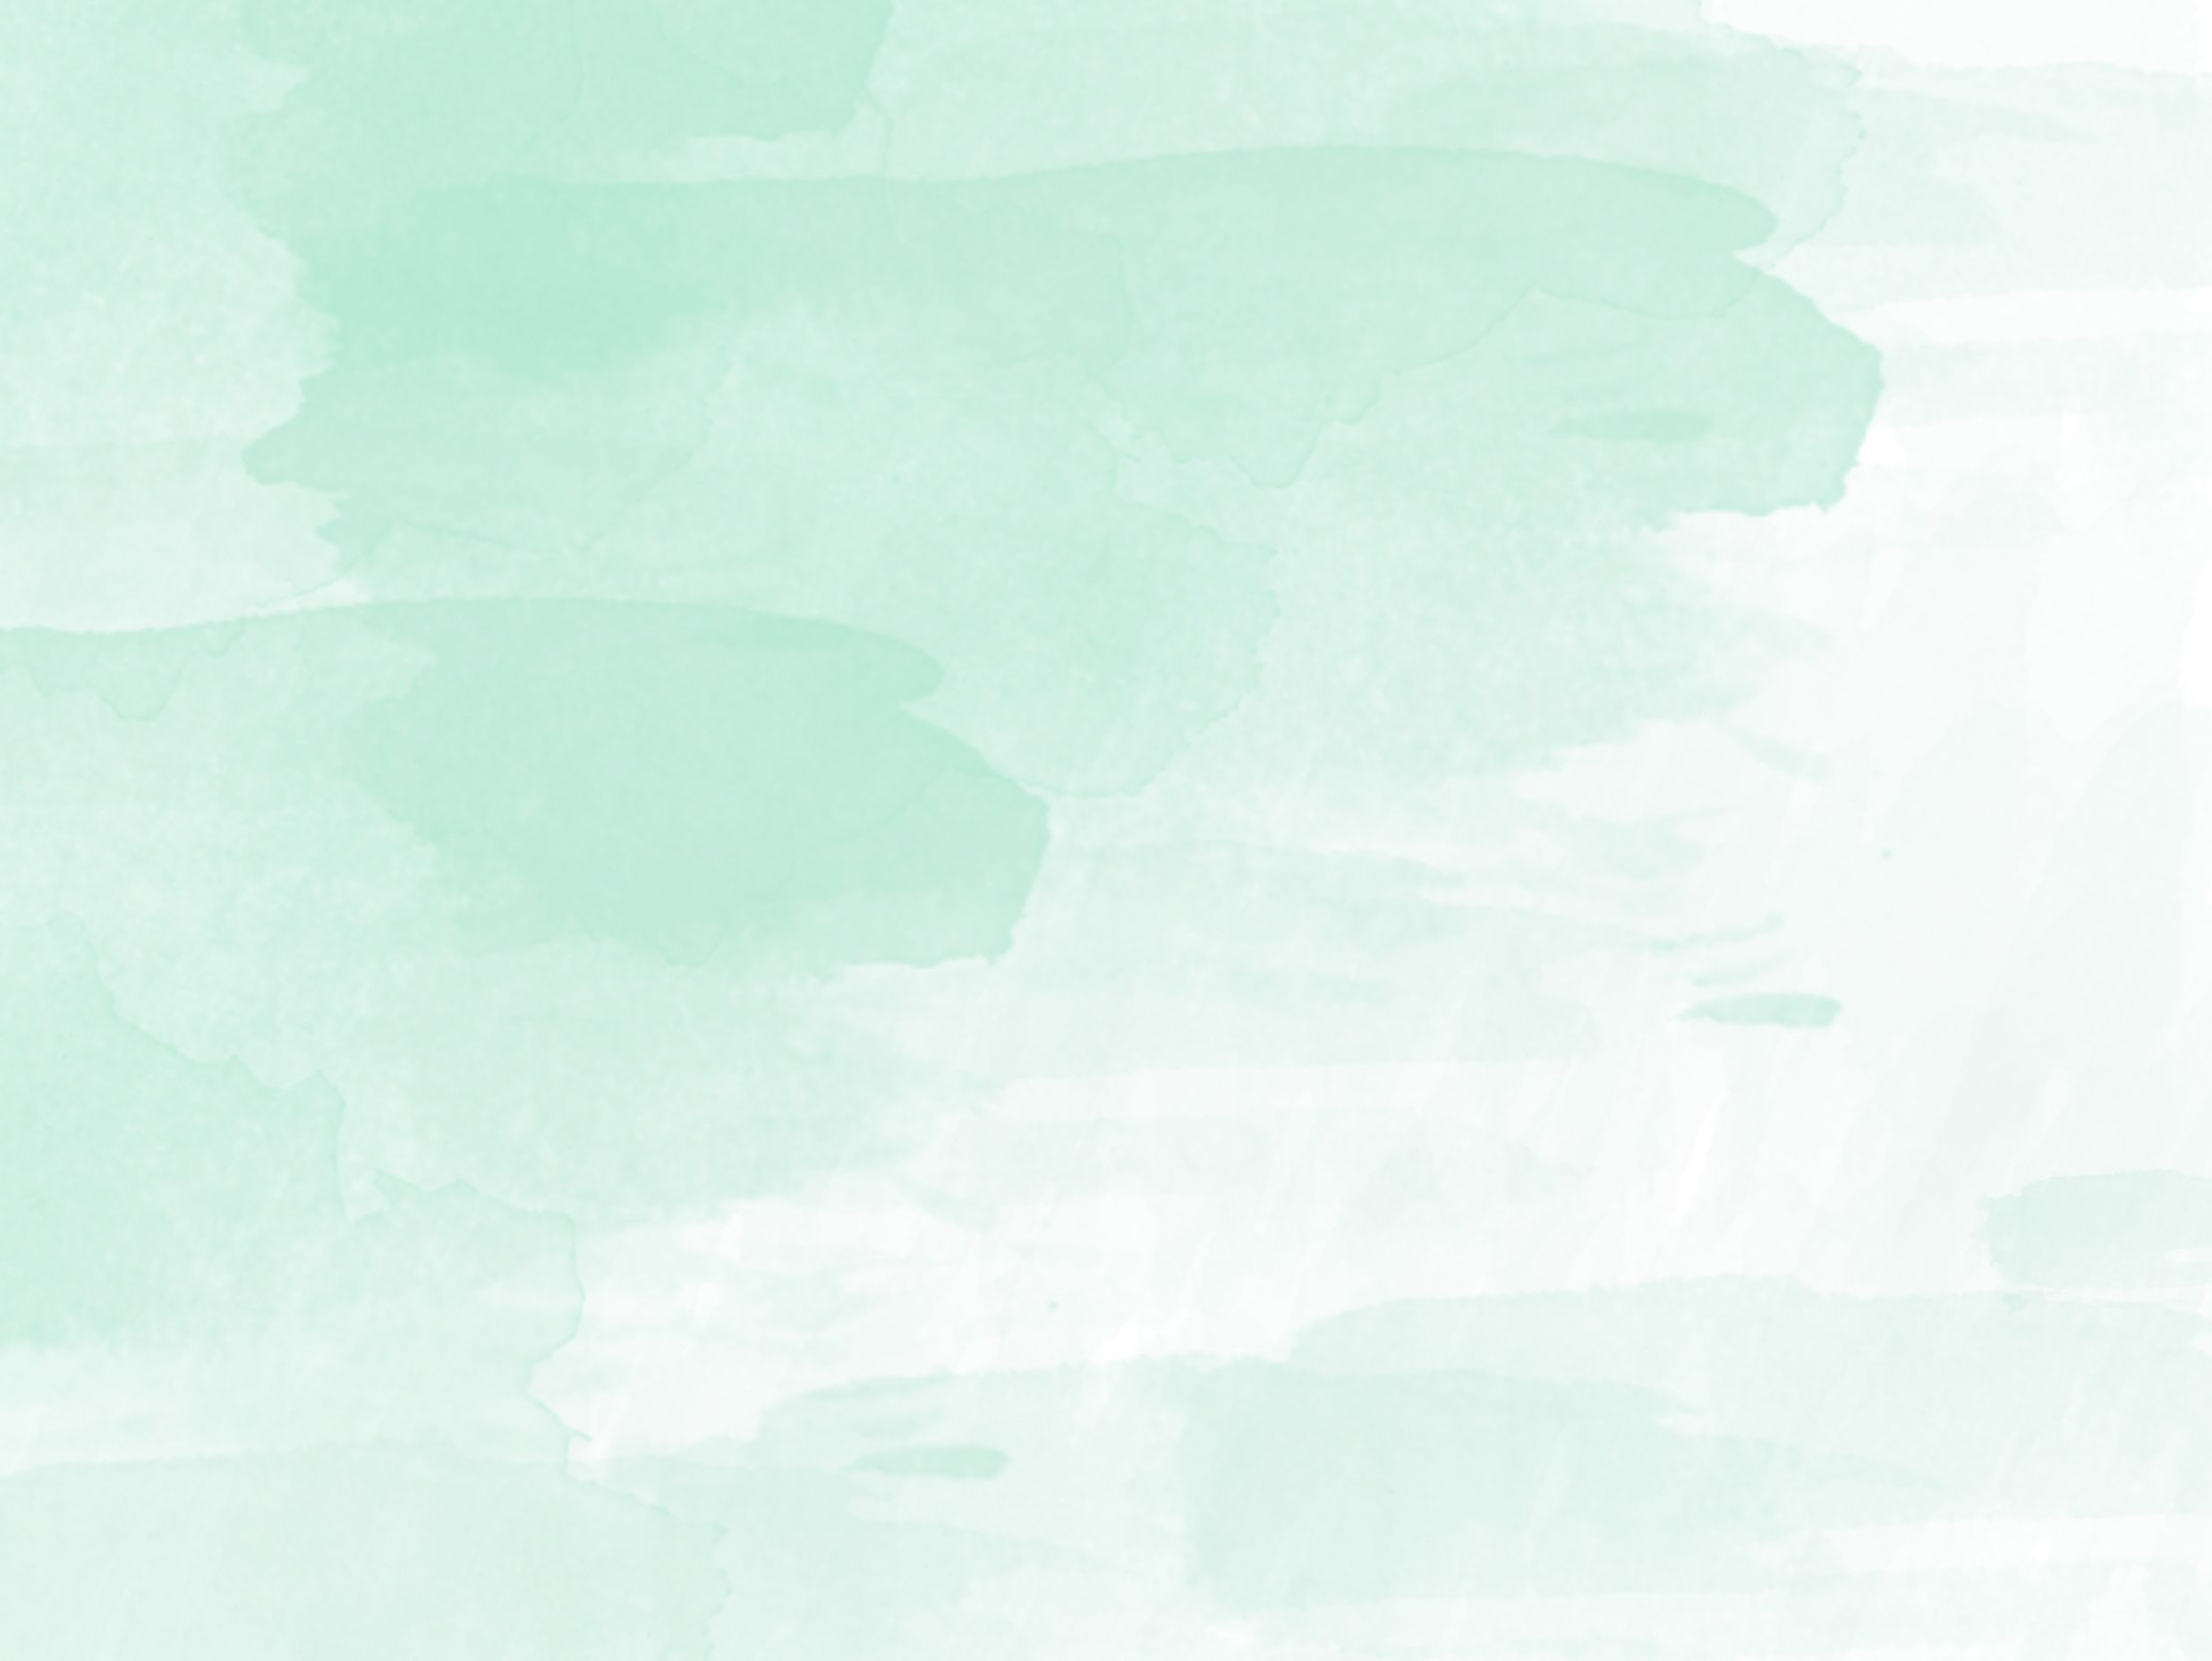 Free Wallpaper Hello Watercolor Mint Green Wallpaper Mint